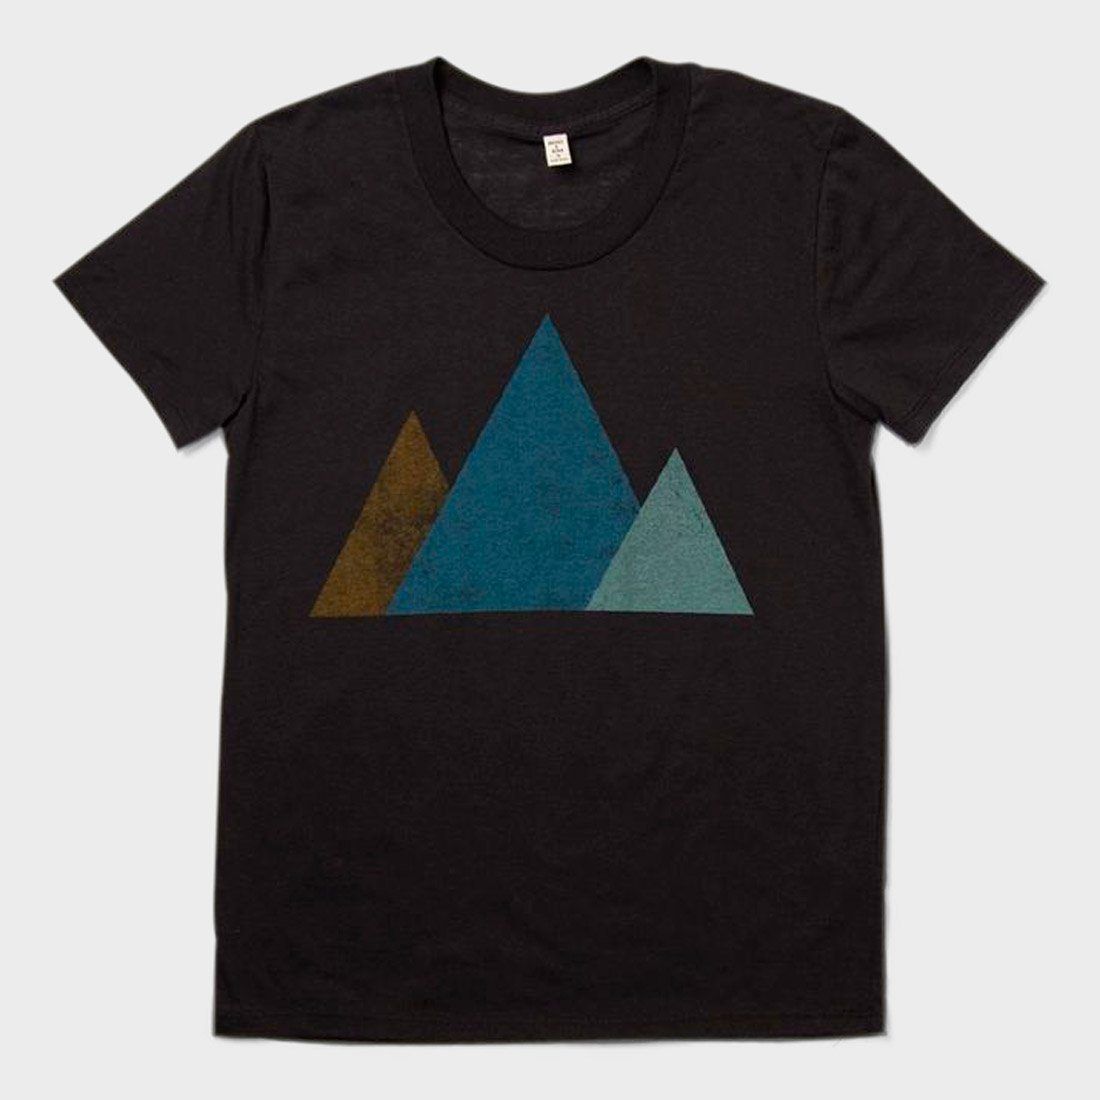 Bridge & Burn Women's Mtn T-Shirt Black